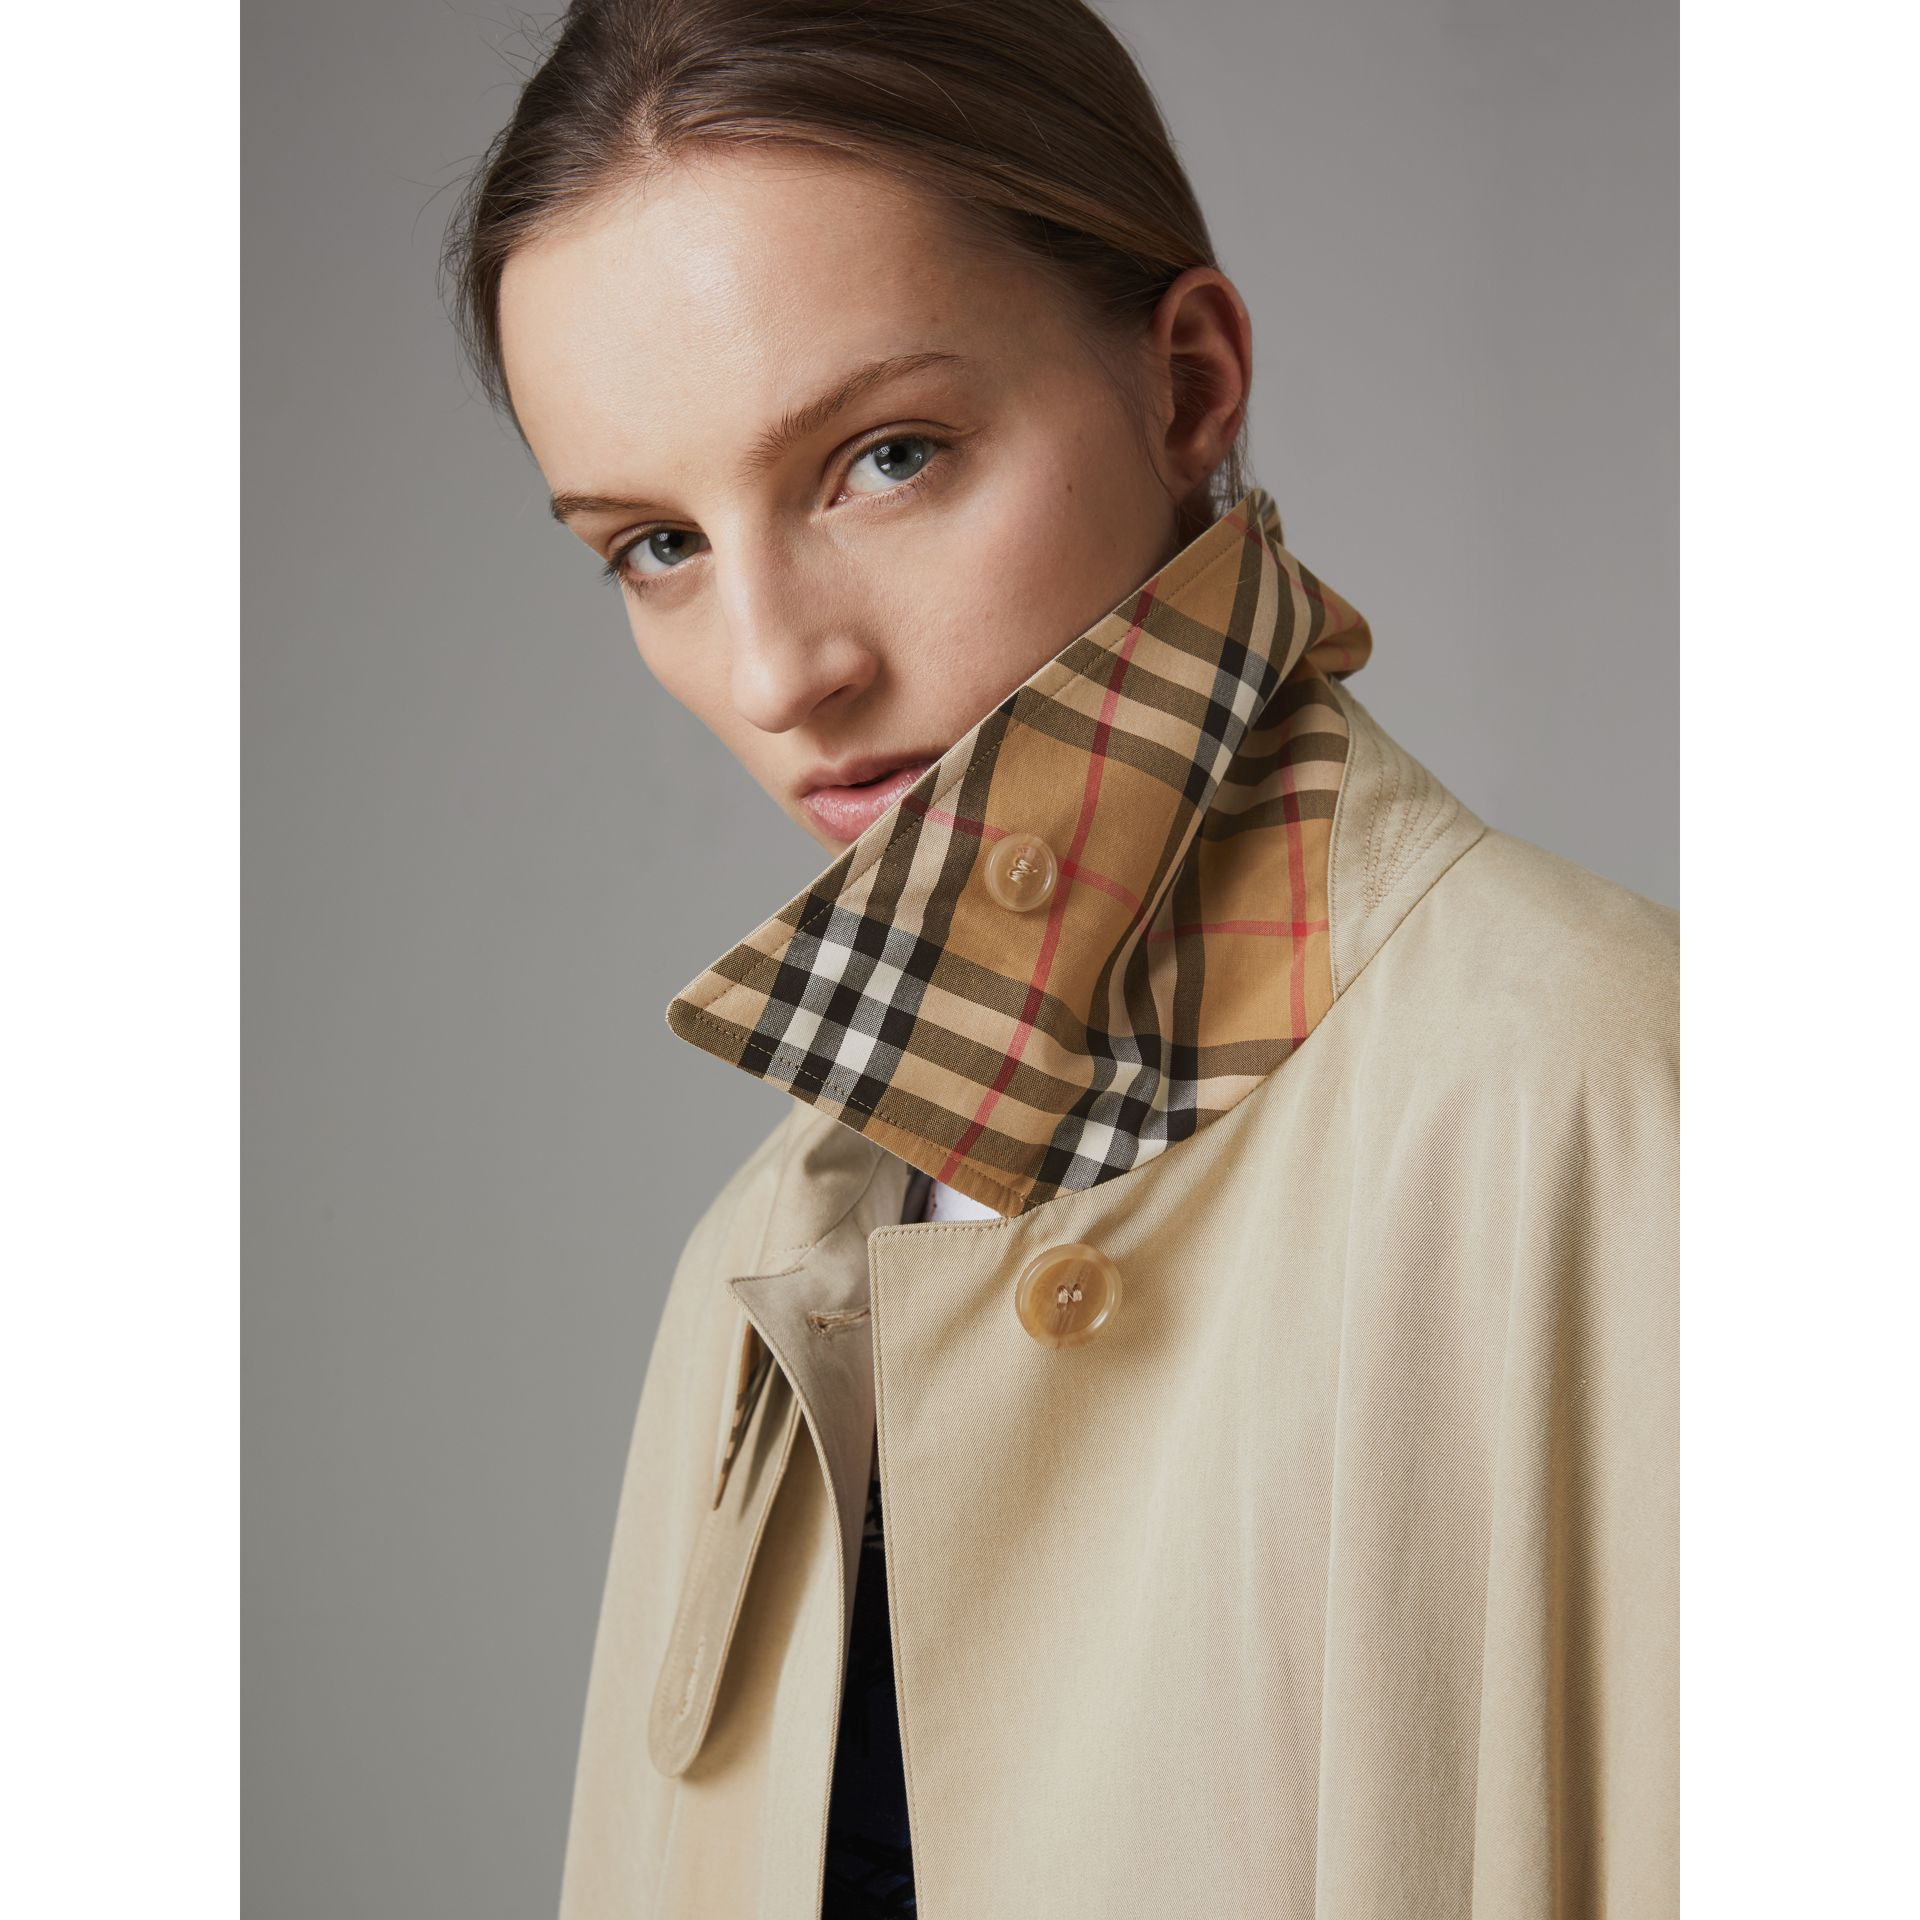 Tropical Gabardine Asymmetric Cape in Oatmeal - Women | Burberry United States - gallery image 1